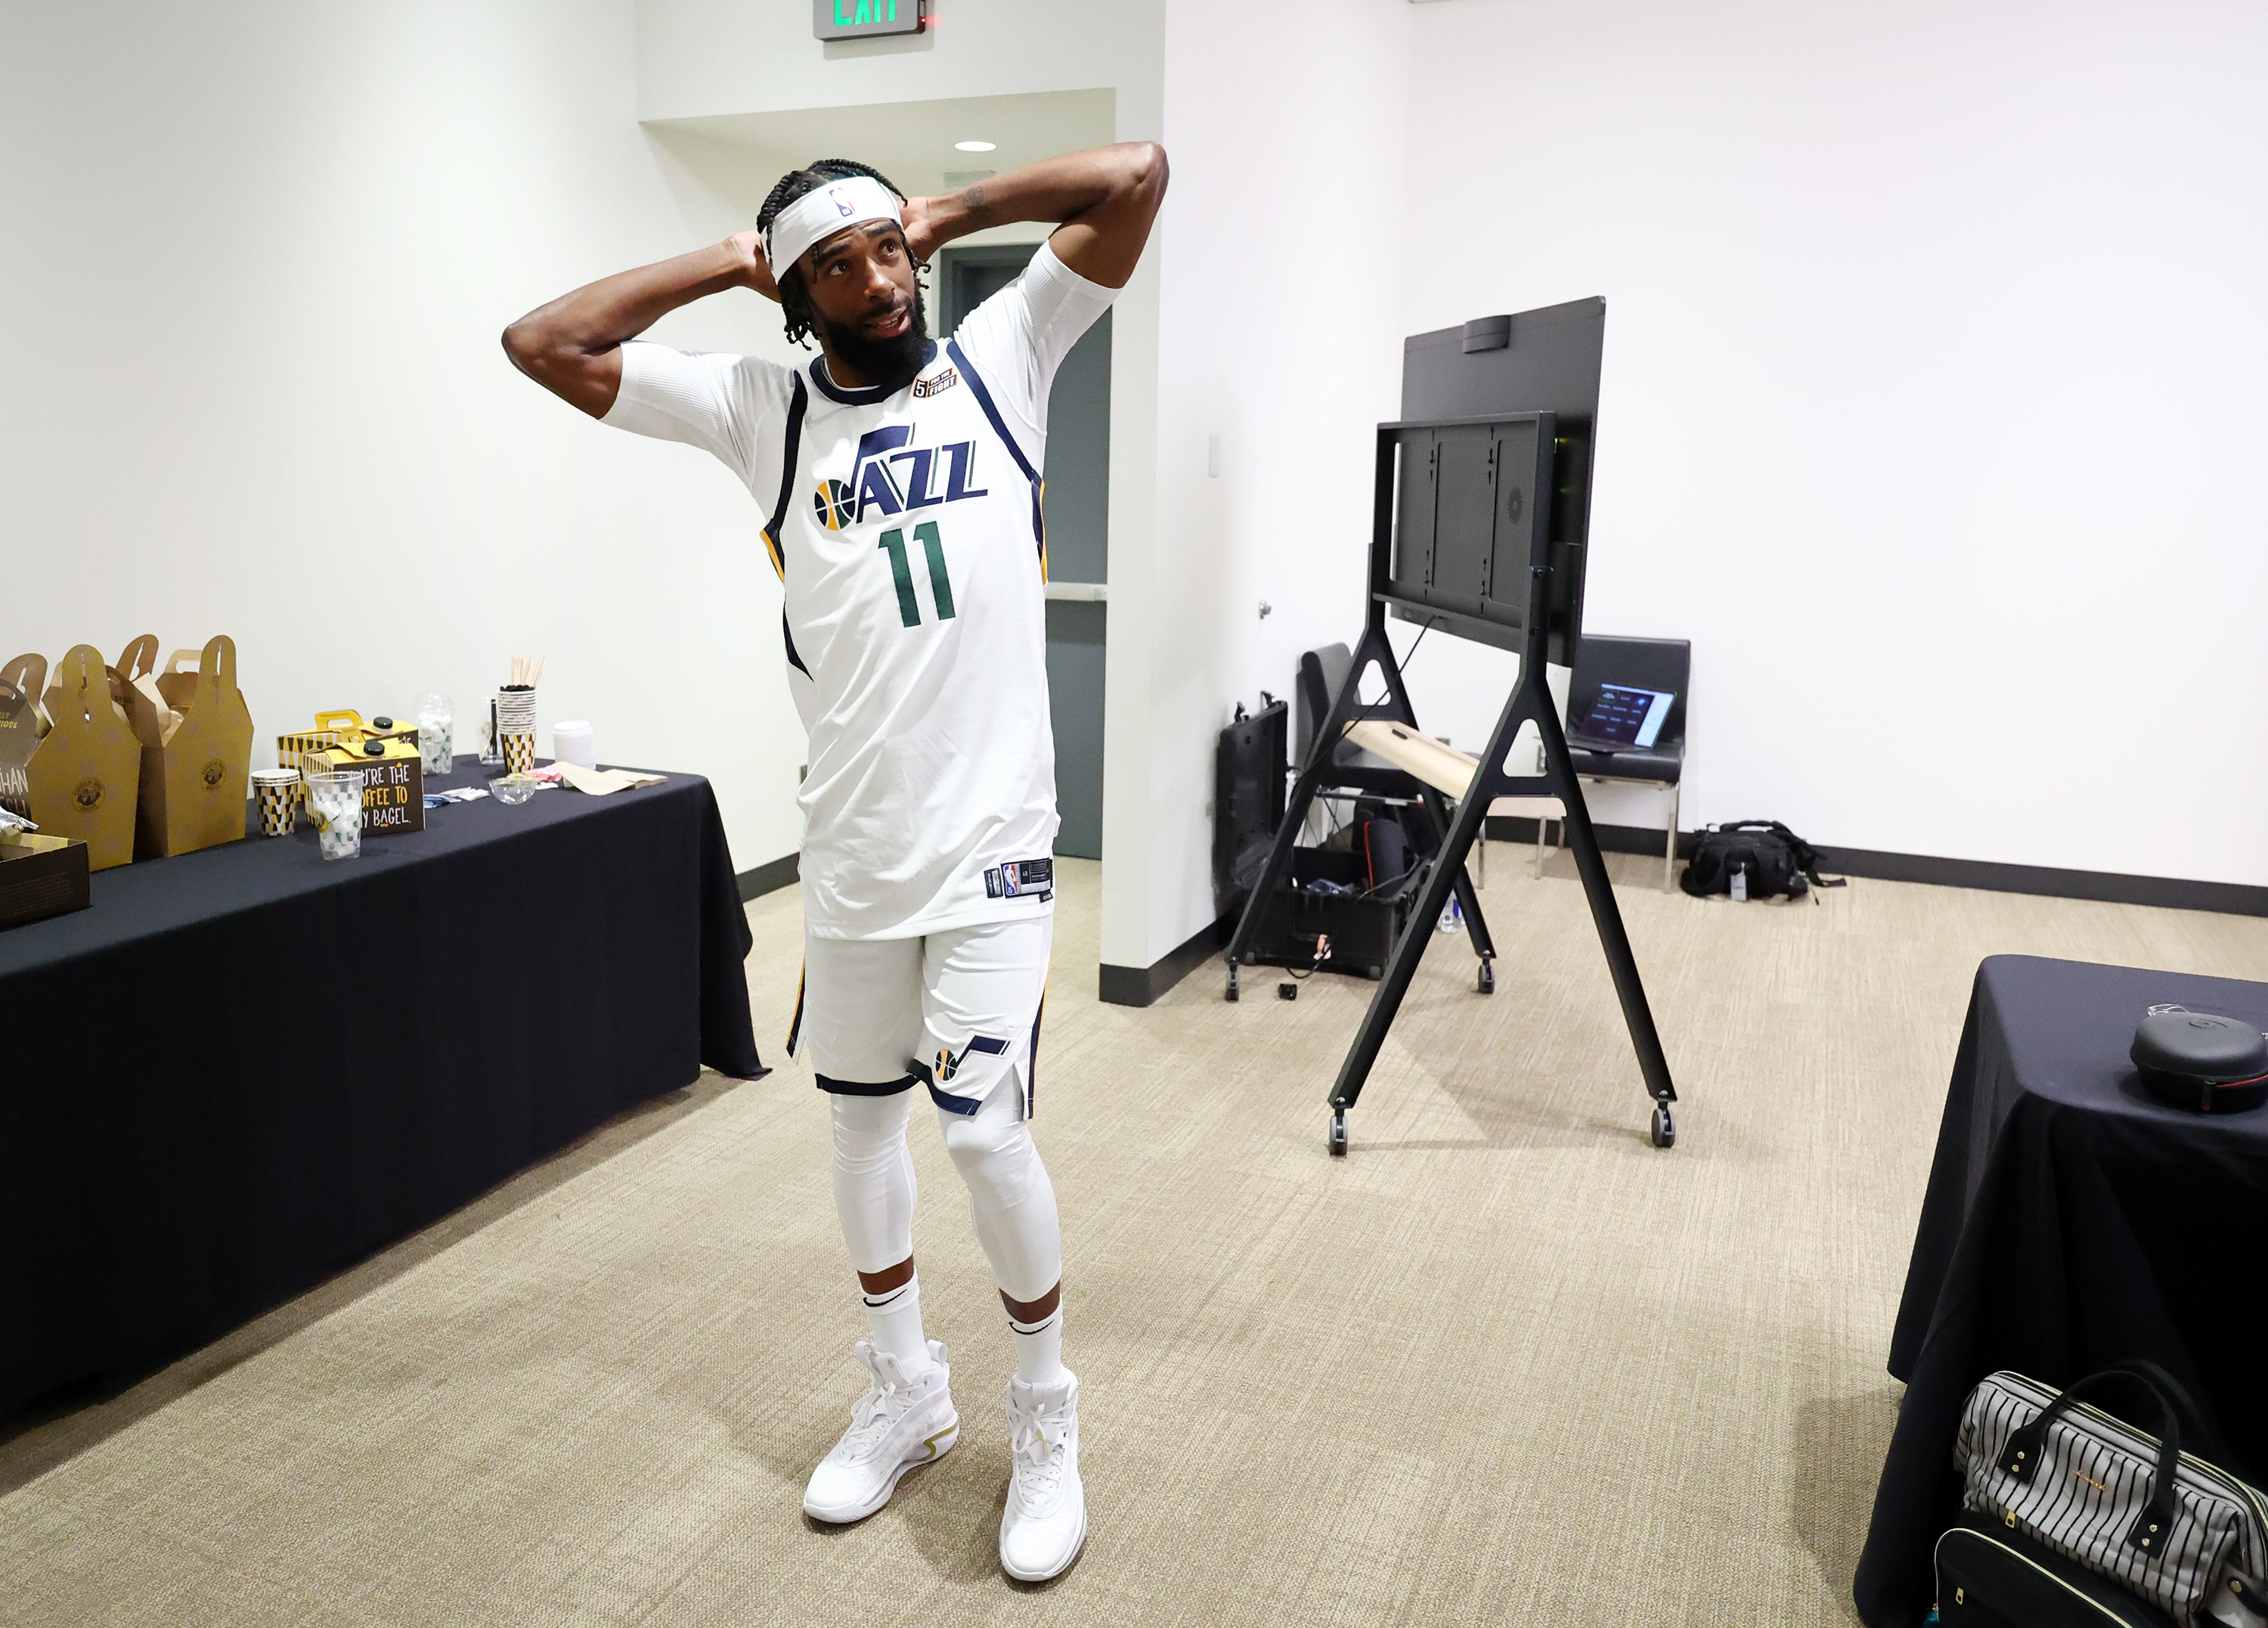 Utah Jazz guard Mike Conley has a short discussion with members of the media  at Jazz media media day in Salt Lake City.